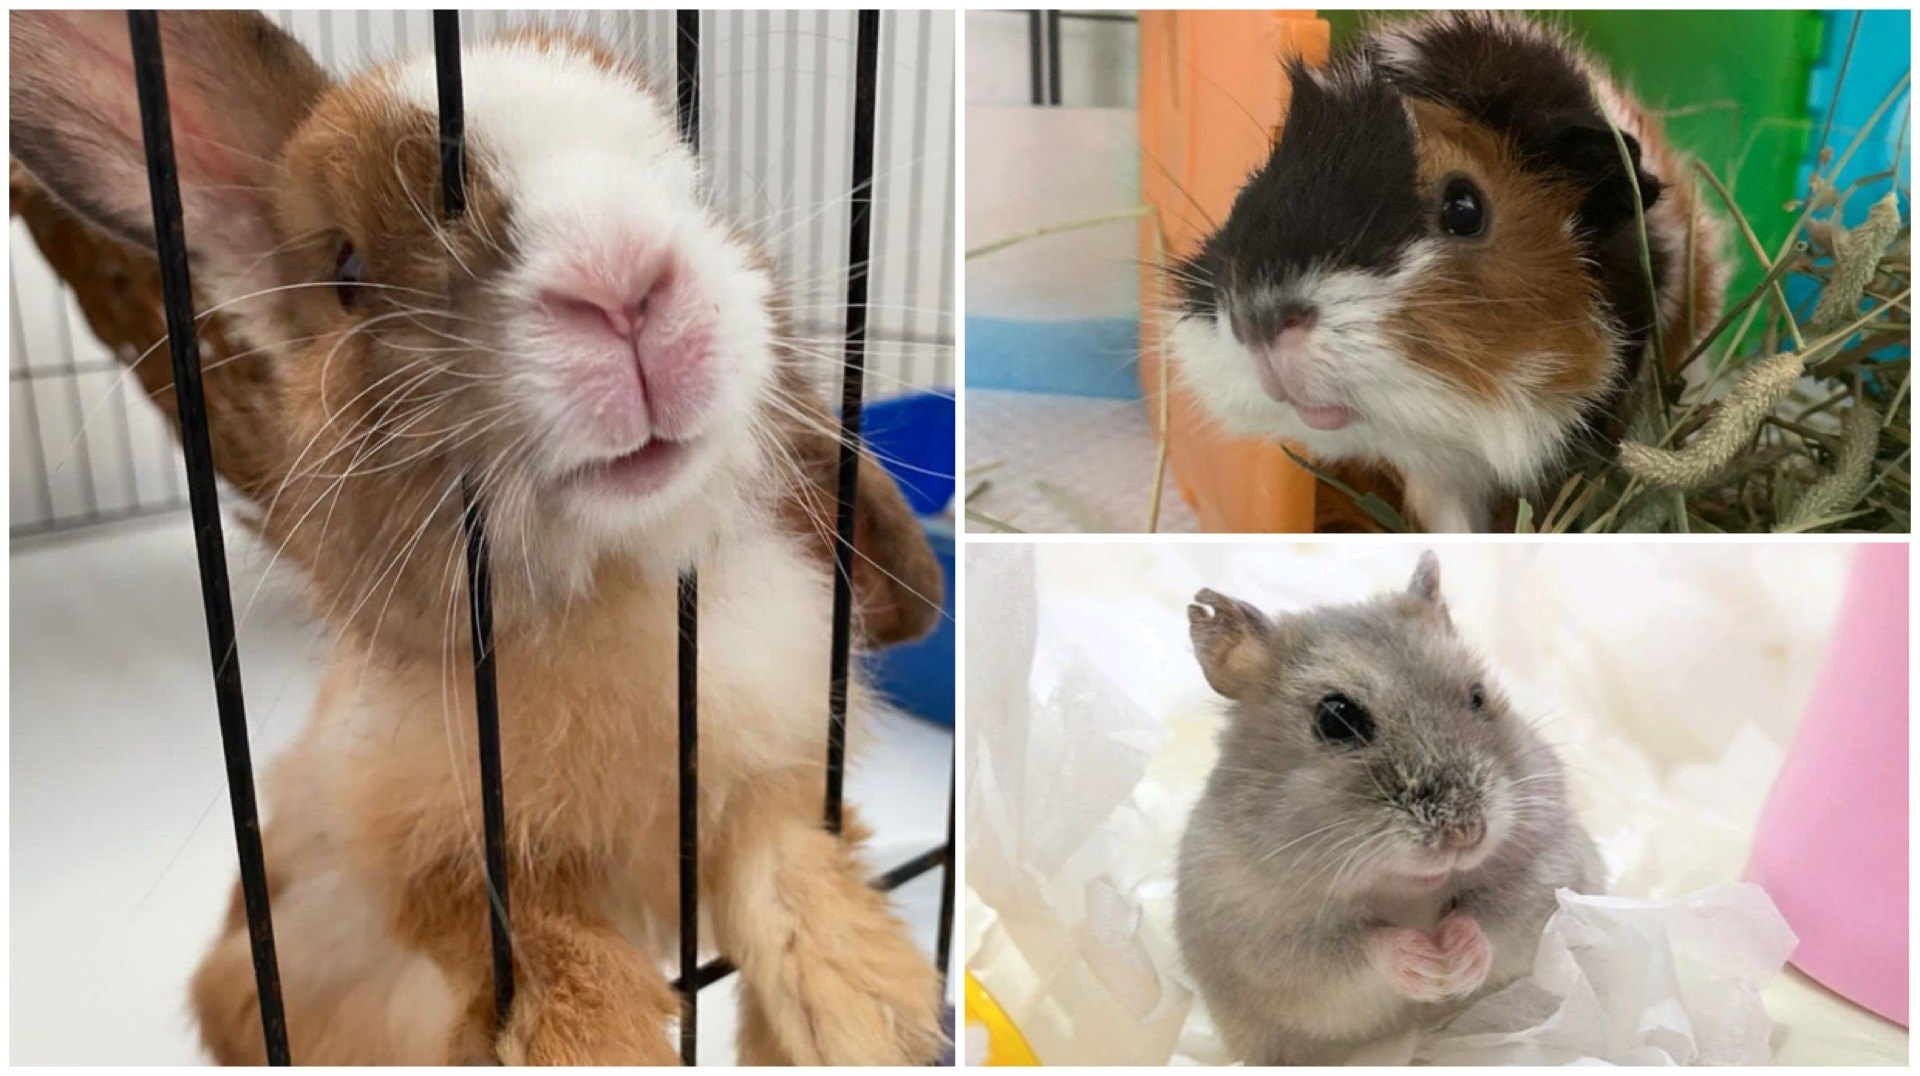 Want To Help Furkids? Start Your Volunteer Journey Small With Rabbits And Hamsters